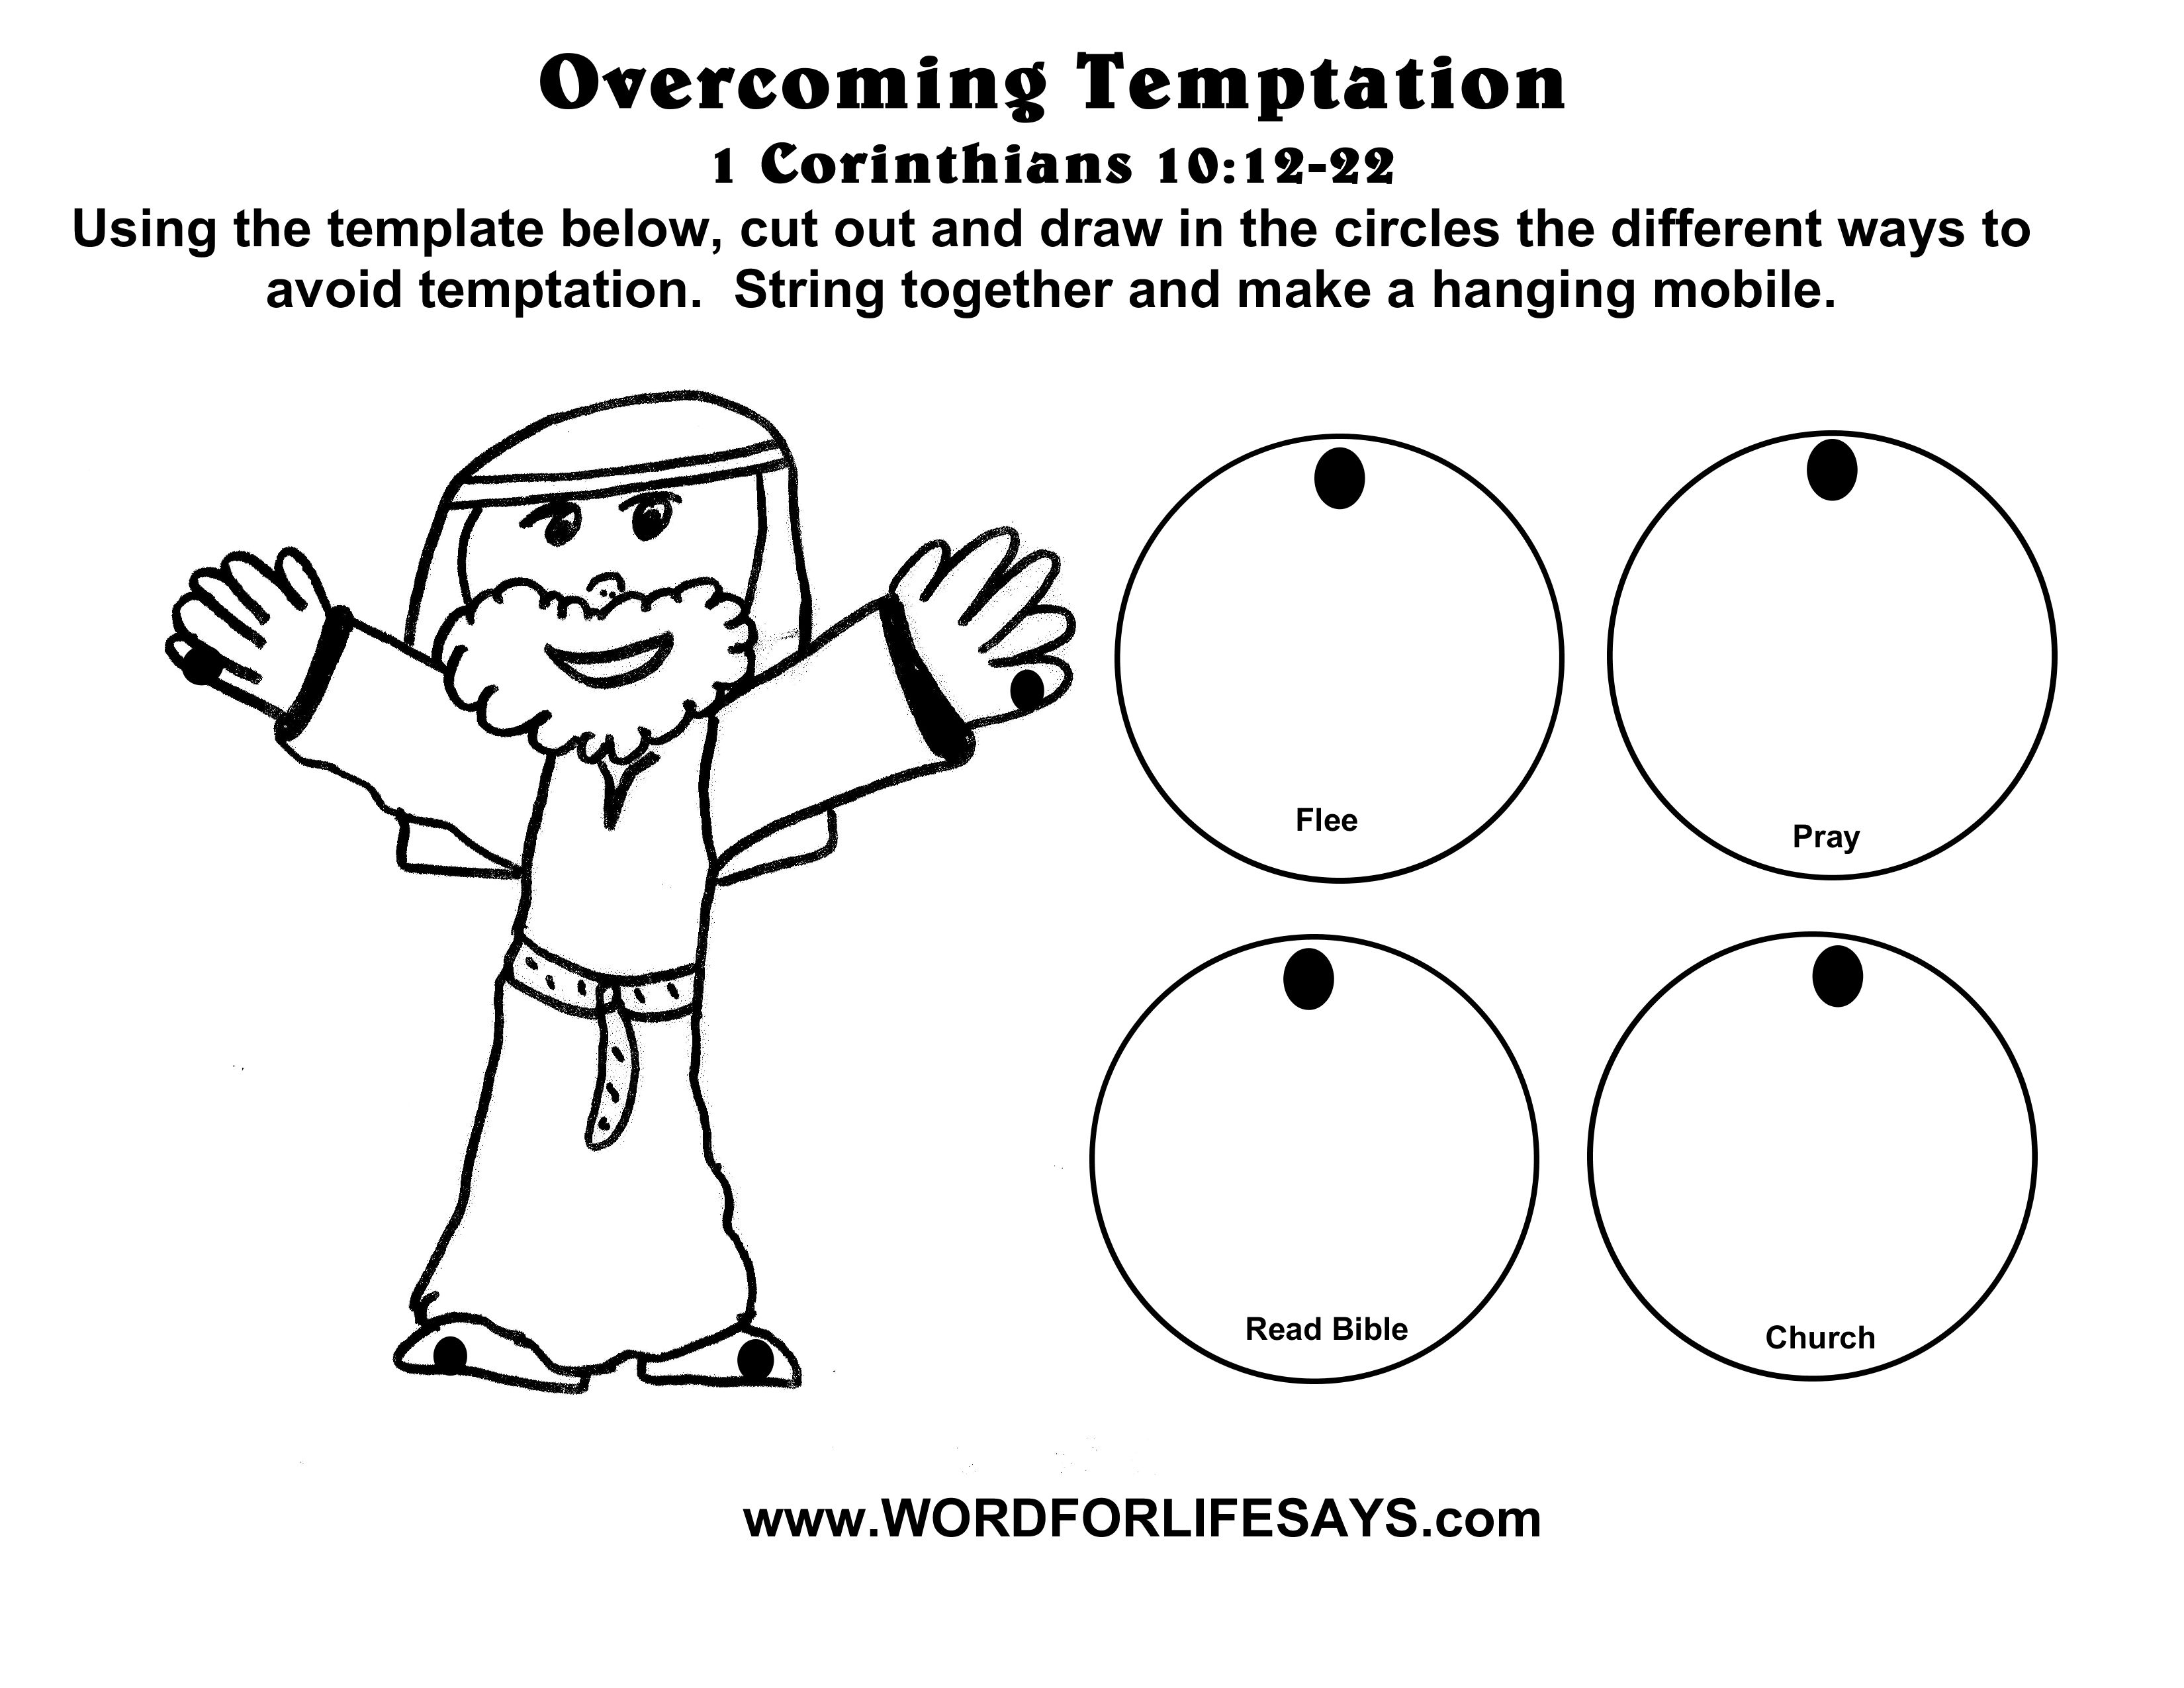 Overcoming Temptation Sunday School Lesson 1 Corinthians 10 12 22 July 20 2014 Word For